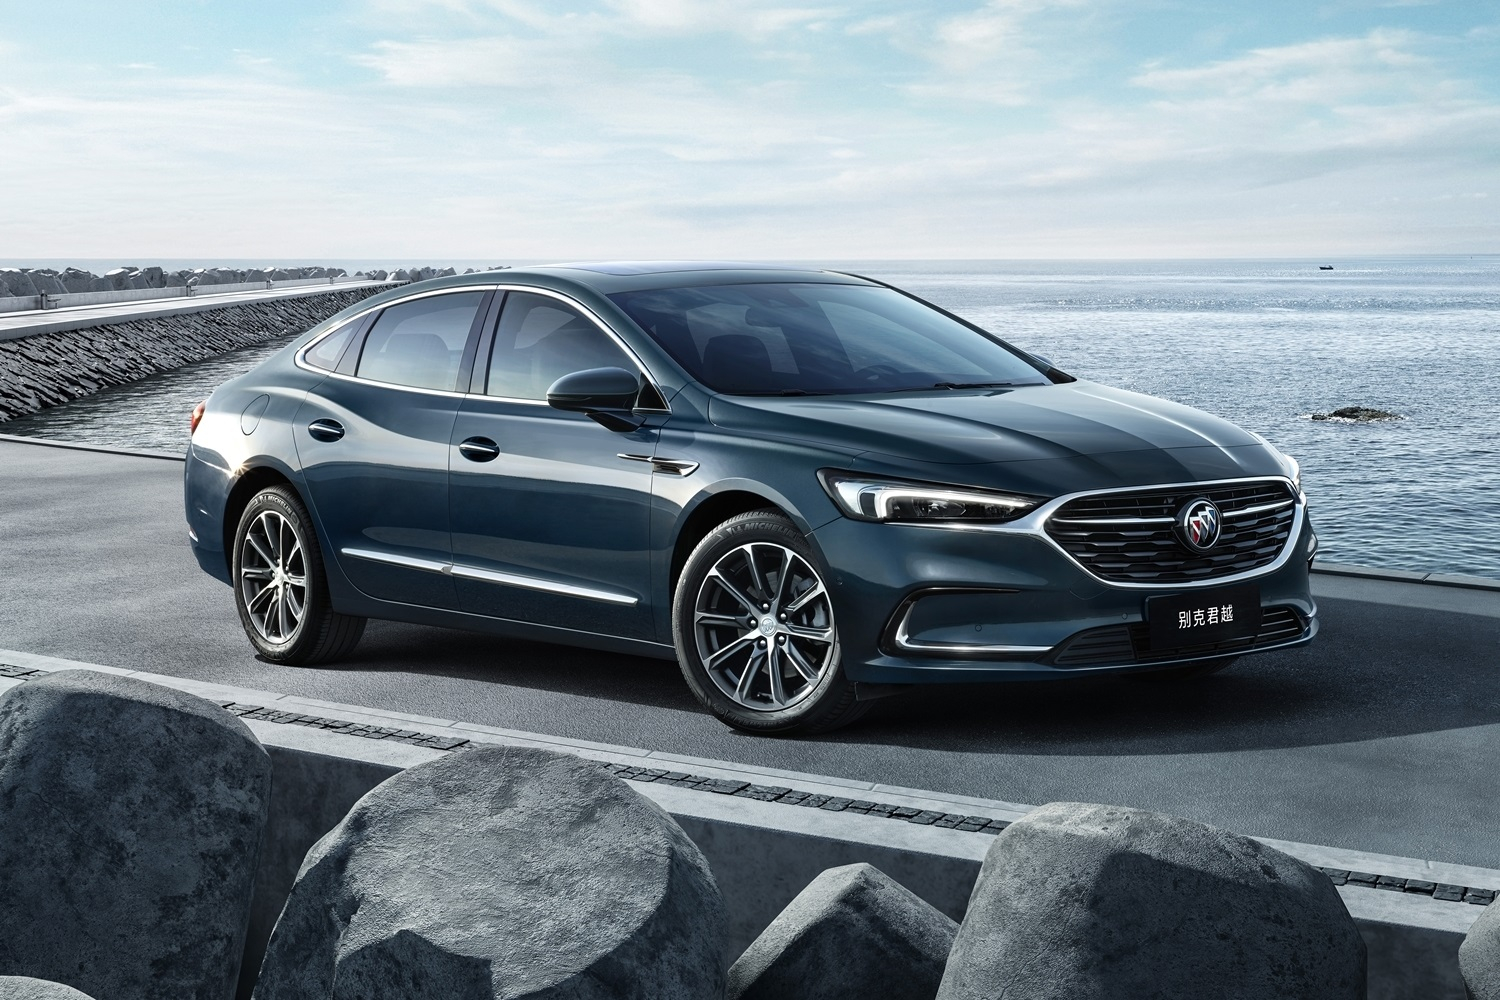 2021 Buick Lacrosse Gets More Refined Than Ever   Gm Authority New 2022 Buick Lucerne Rims, Tire Size, Headlights